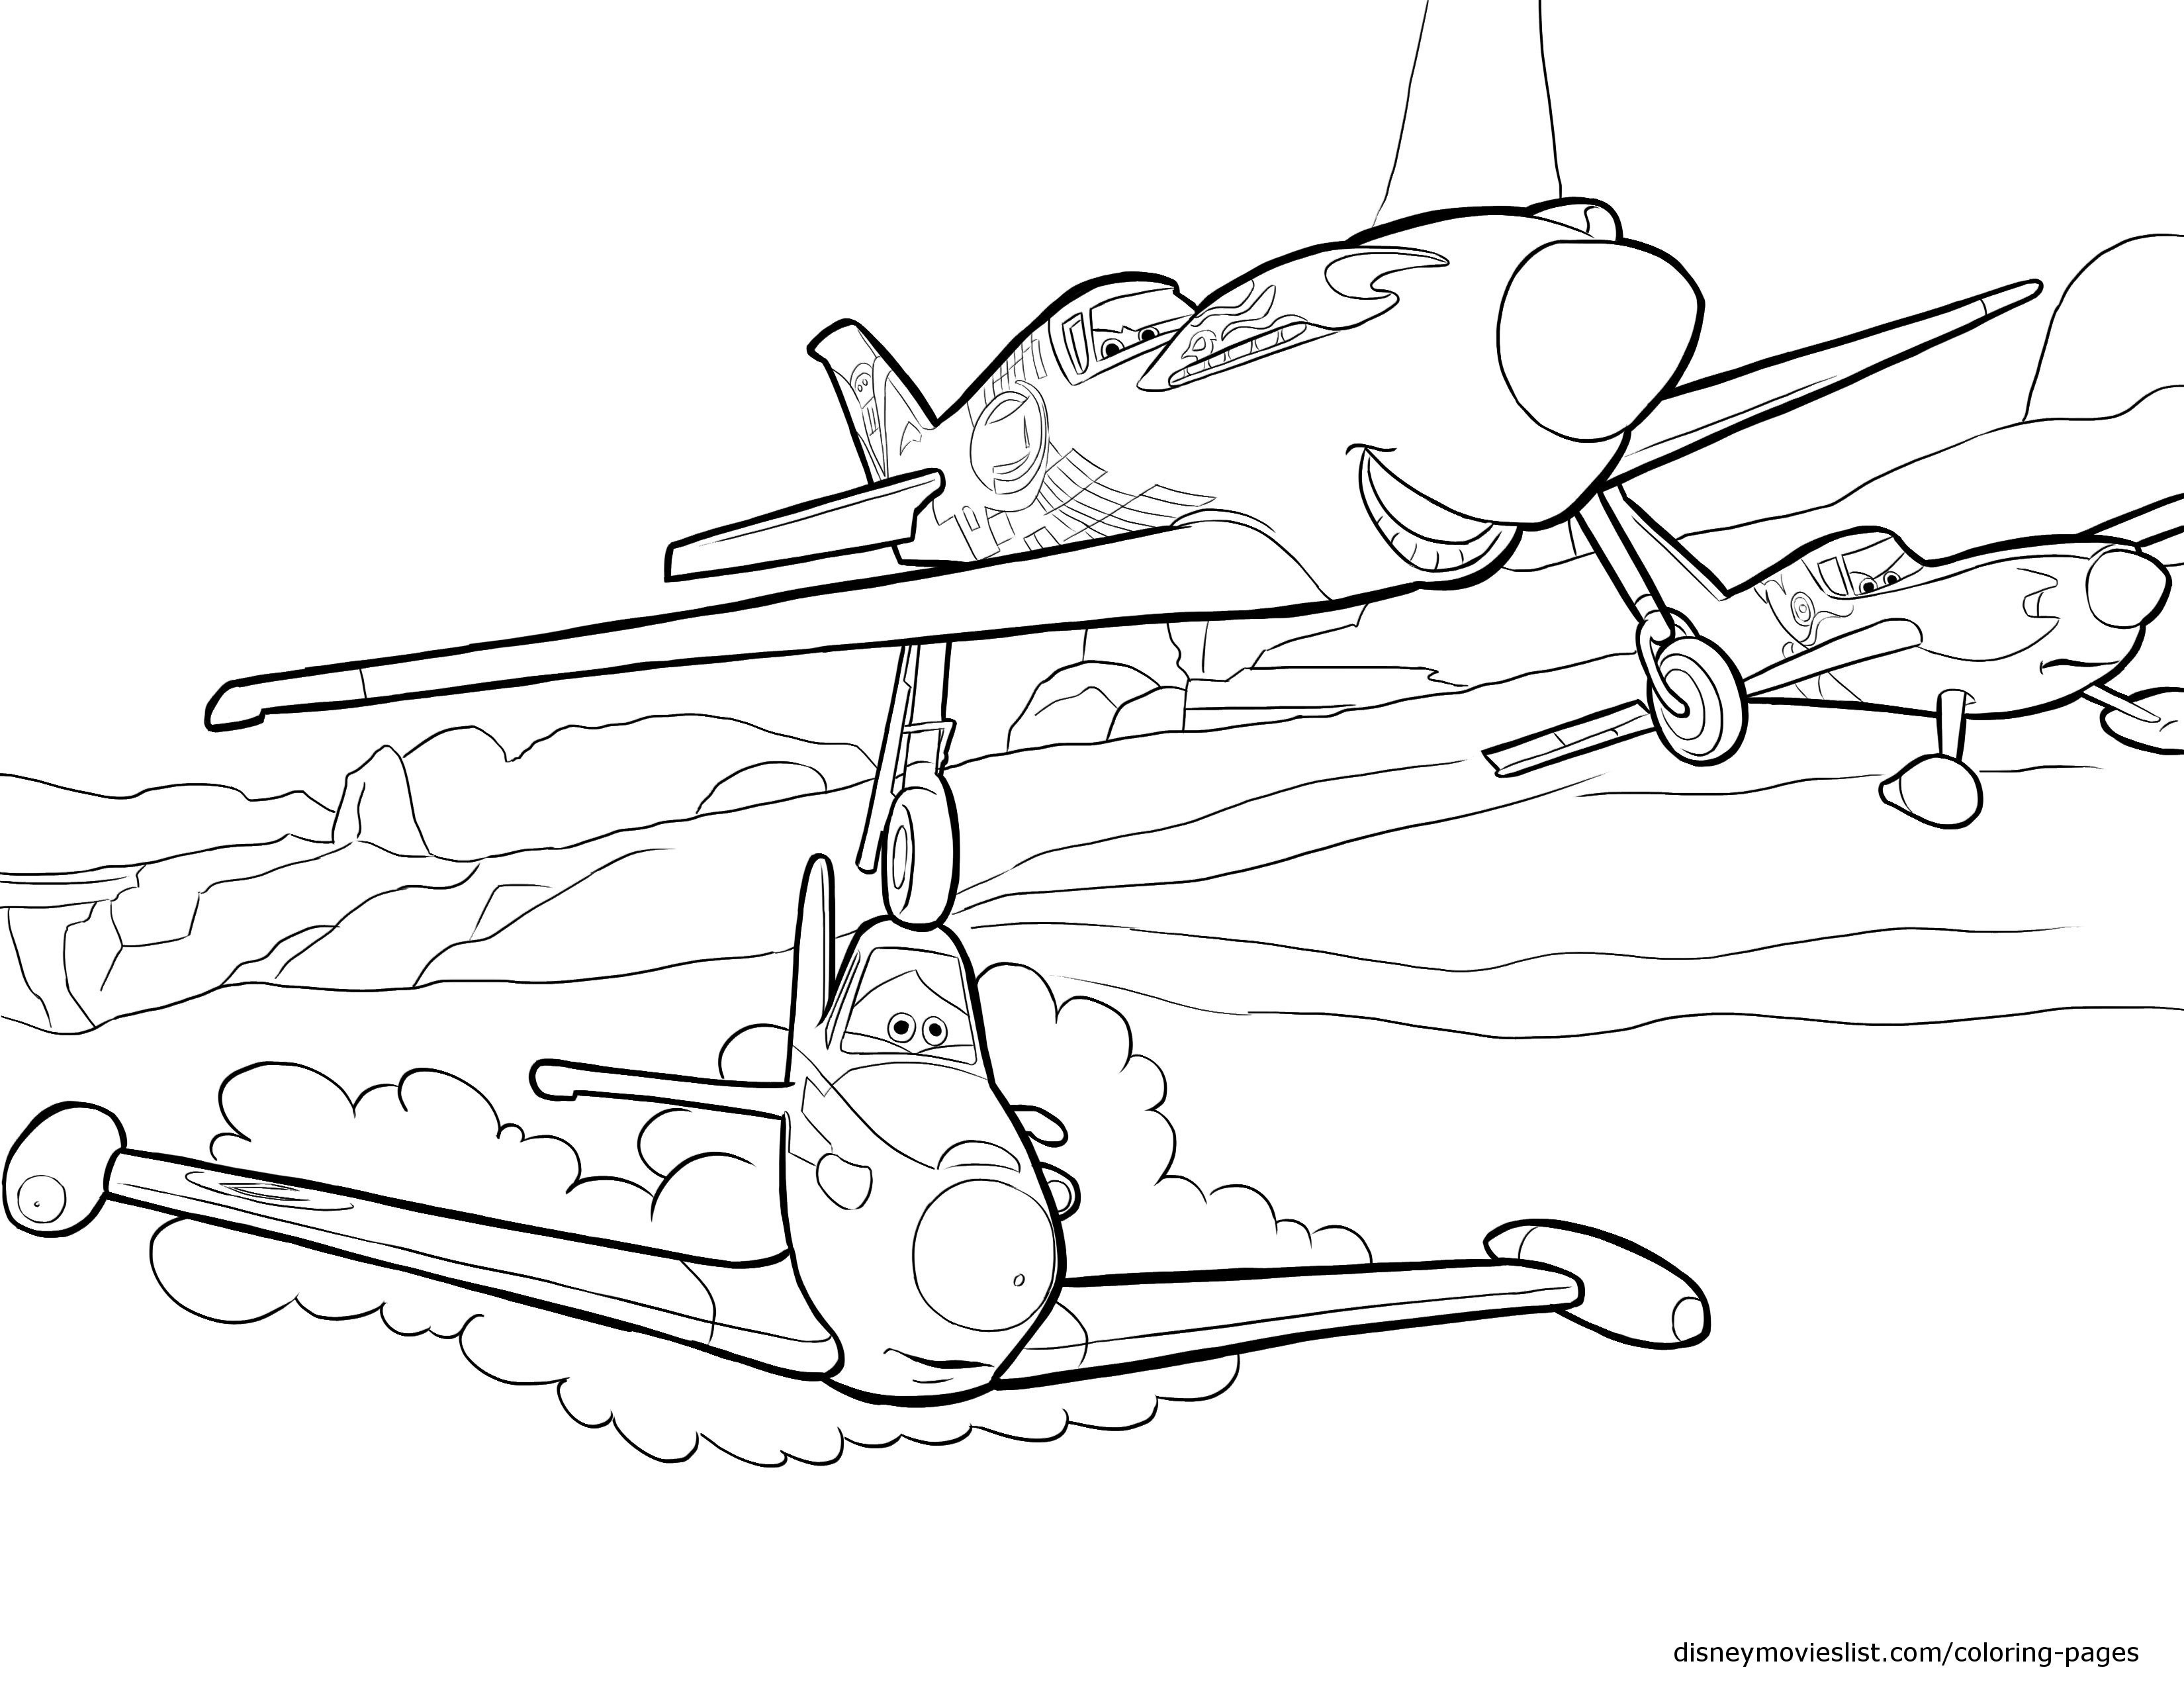 Airplane Coloring Pages Coloring Page Cute Big Airplane Coloring Page Wecoloringpage Com